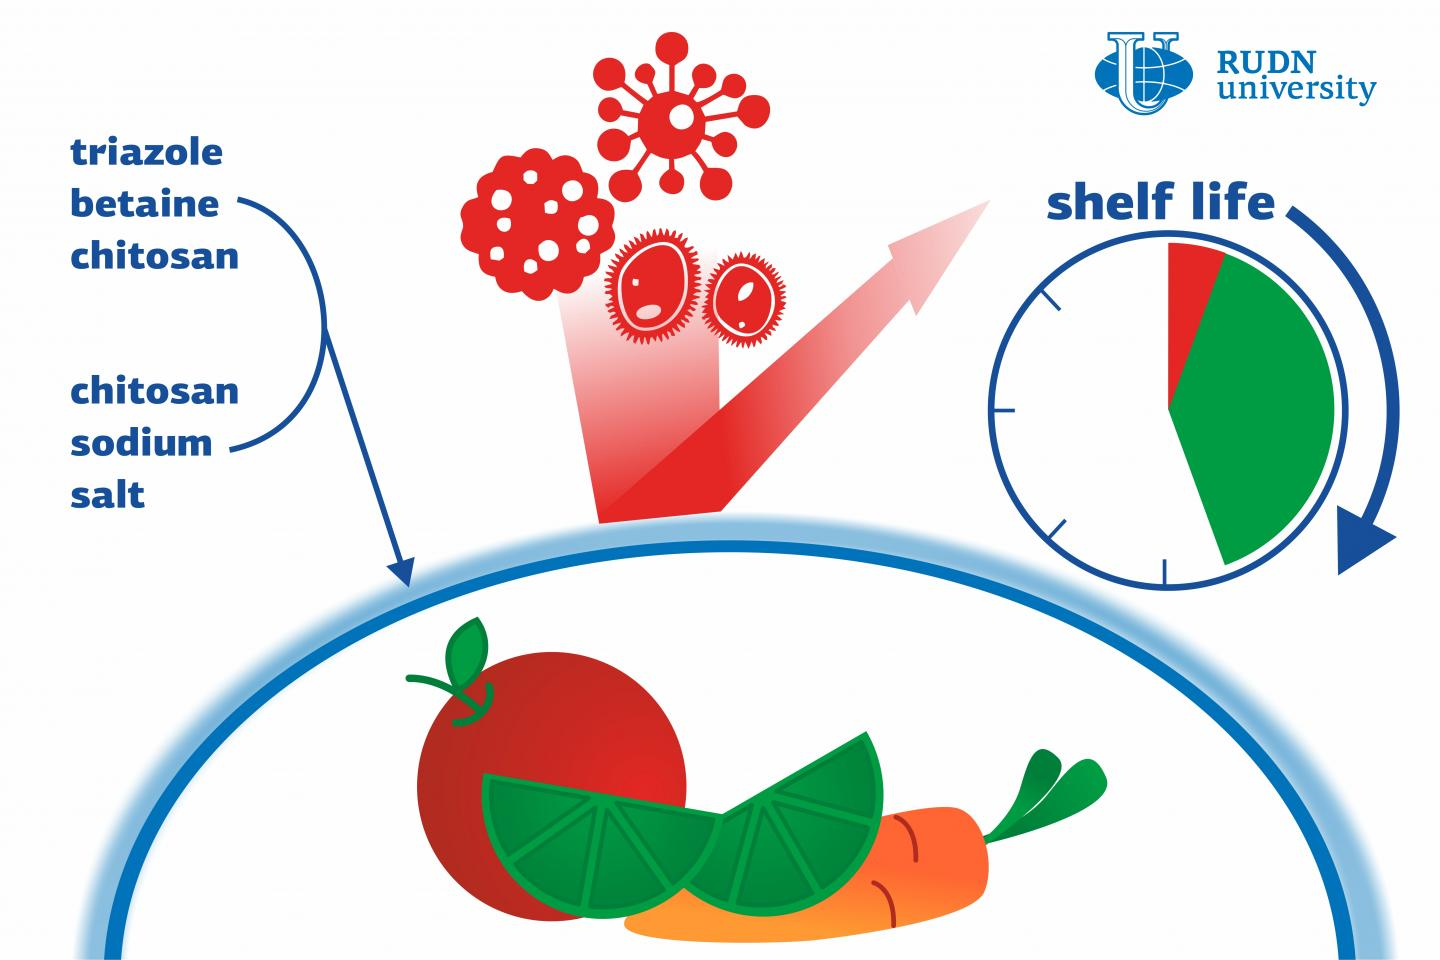 A Team of Chemists from RUDN University Developed Biodegradable Antibacterial Film for Storing Food